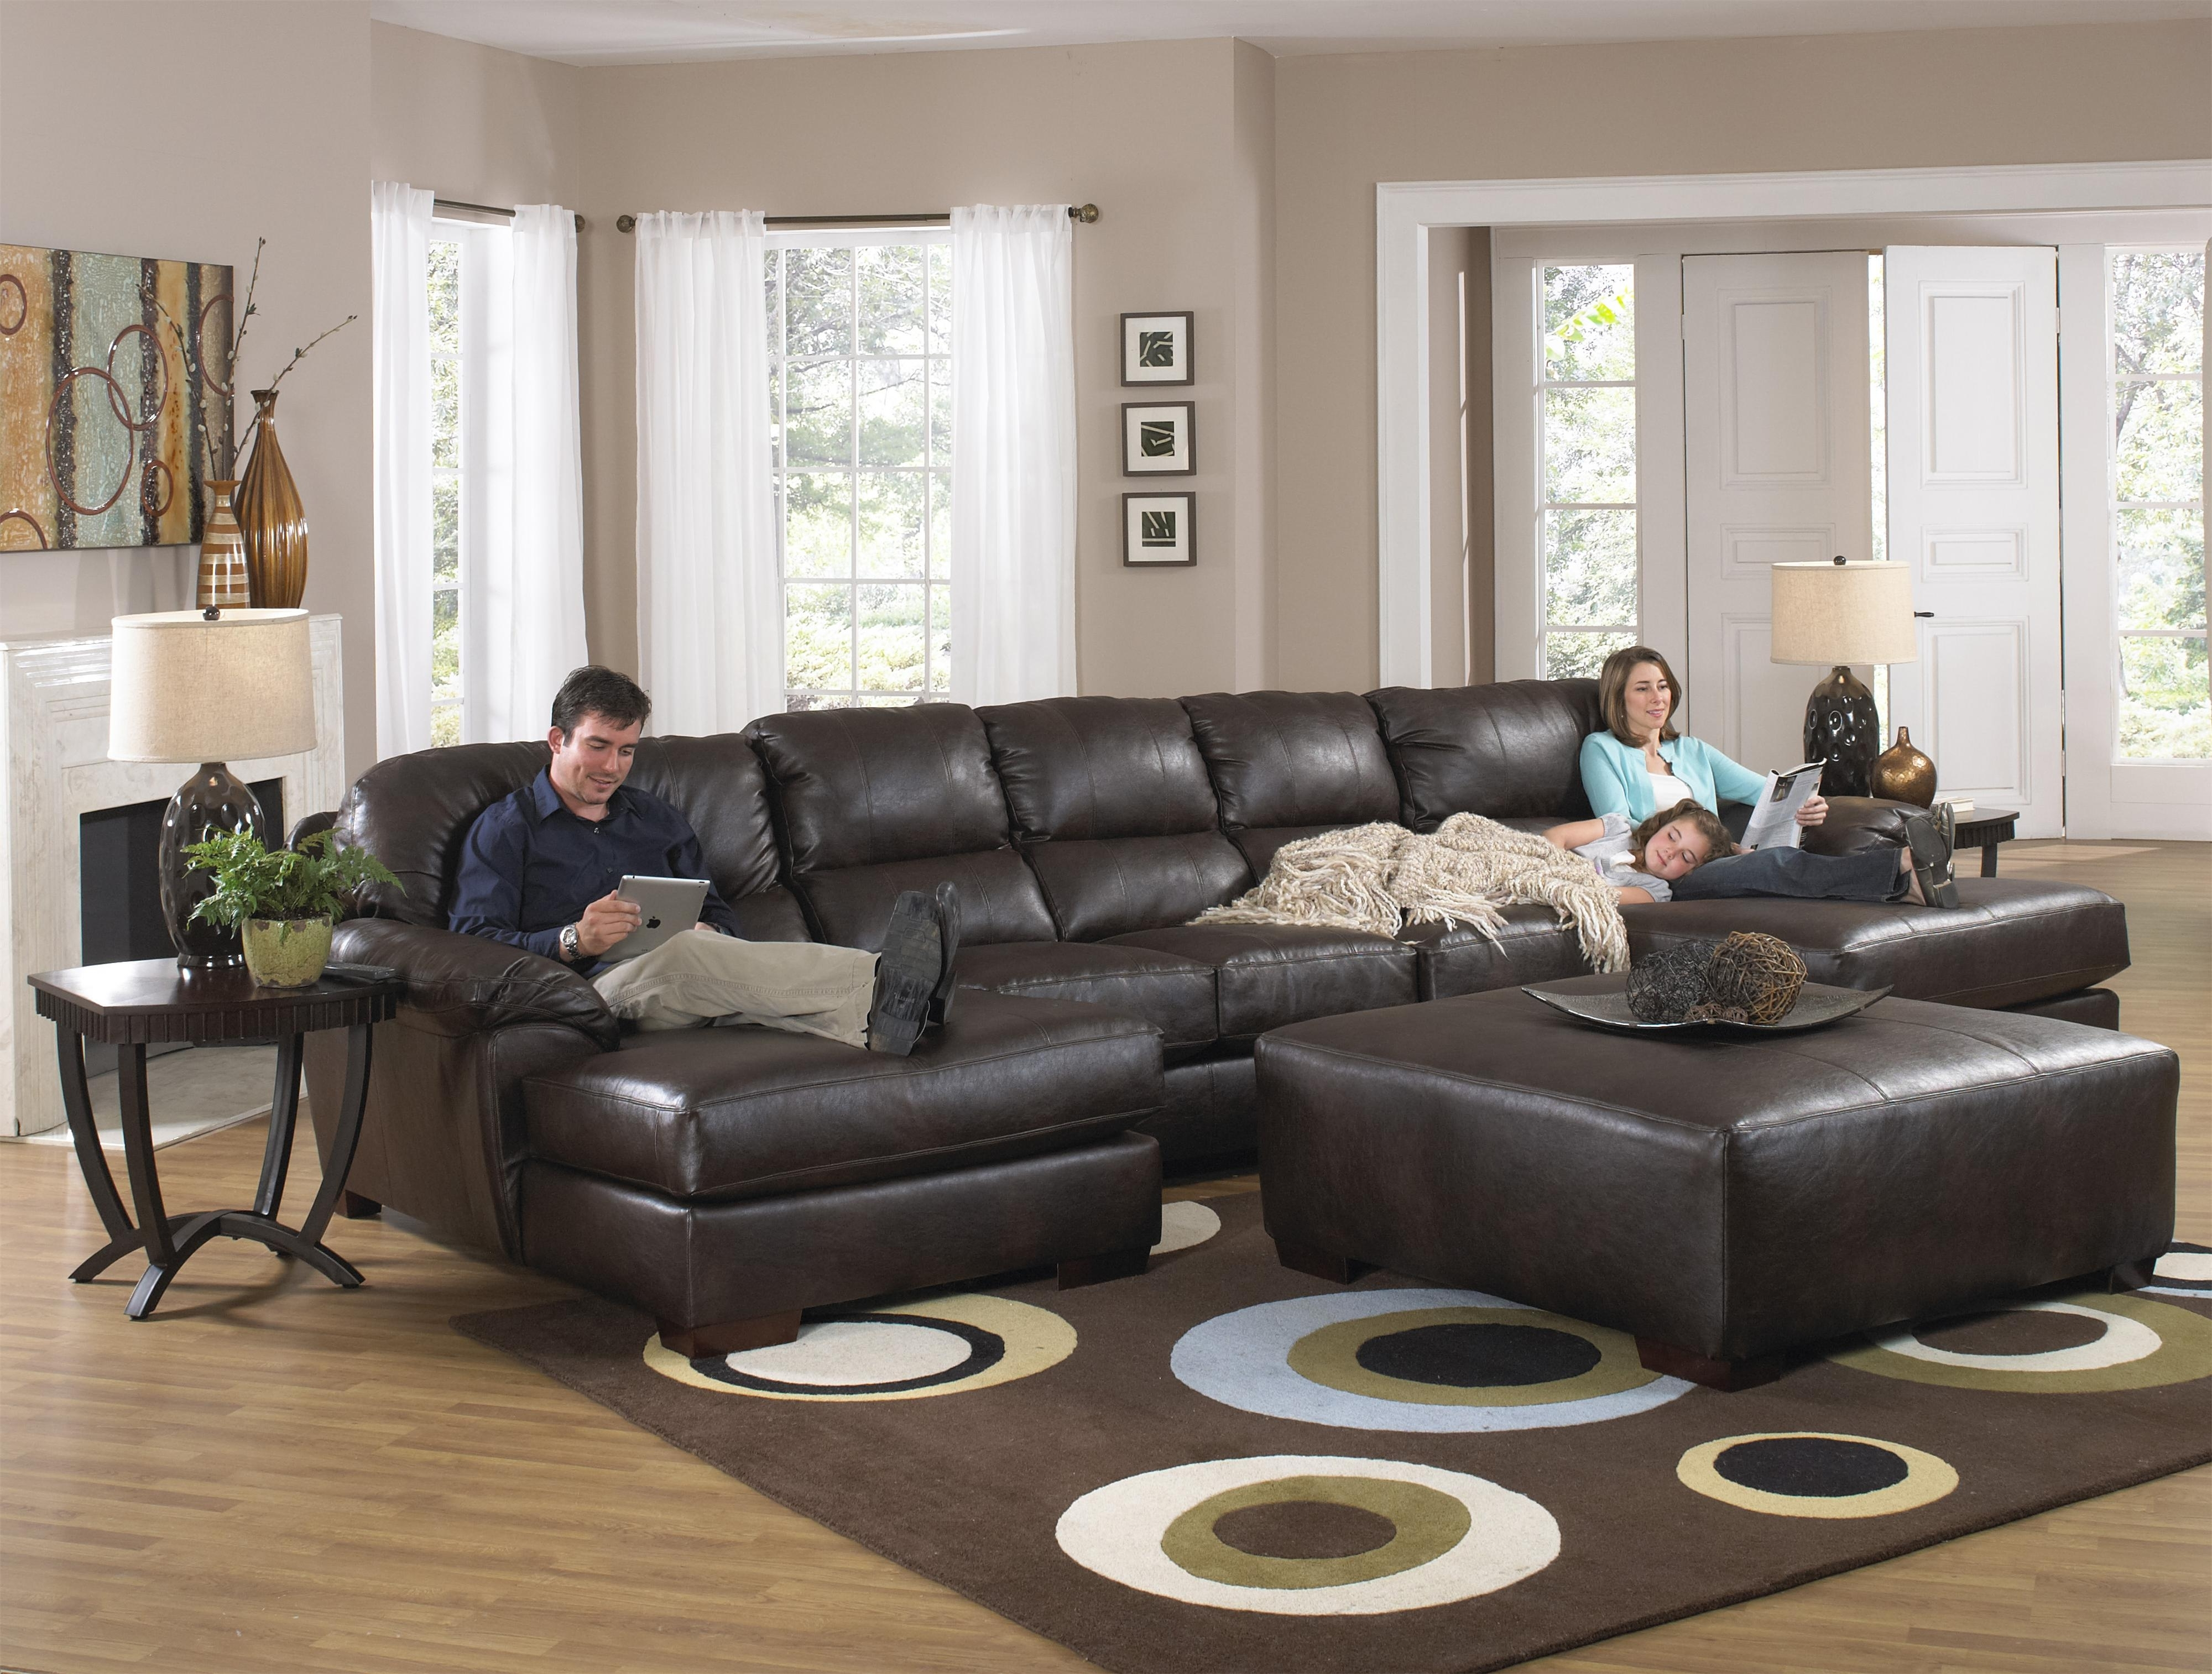 Two Chaise Sectional Sofa With Five Total Seatsjackson In Trendy Leather Sectionals With Chaise And Ottoman (View 3 of 15)